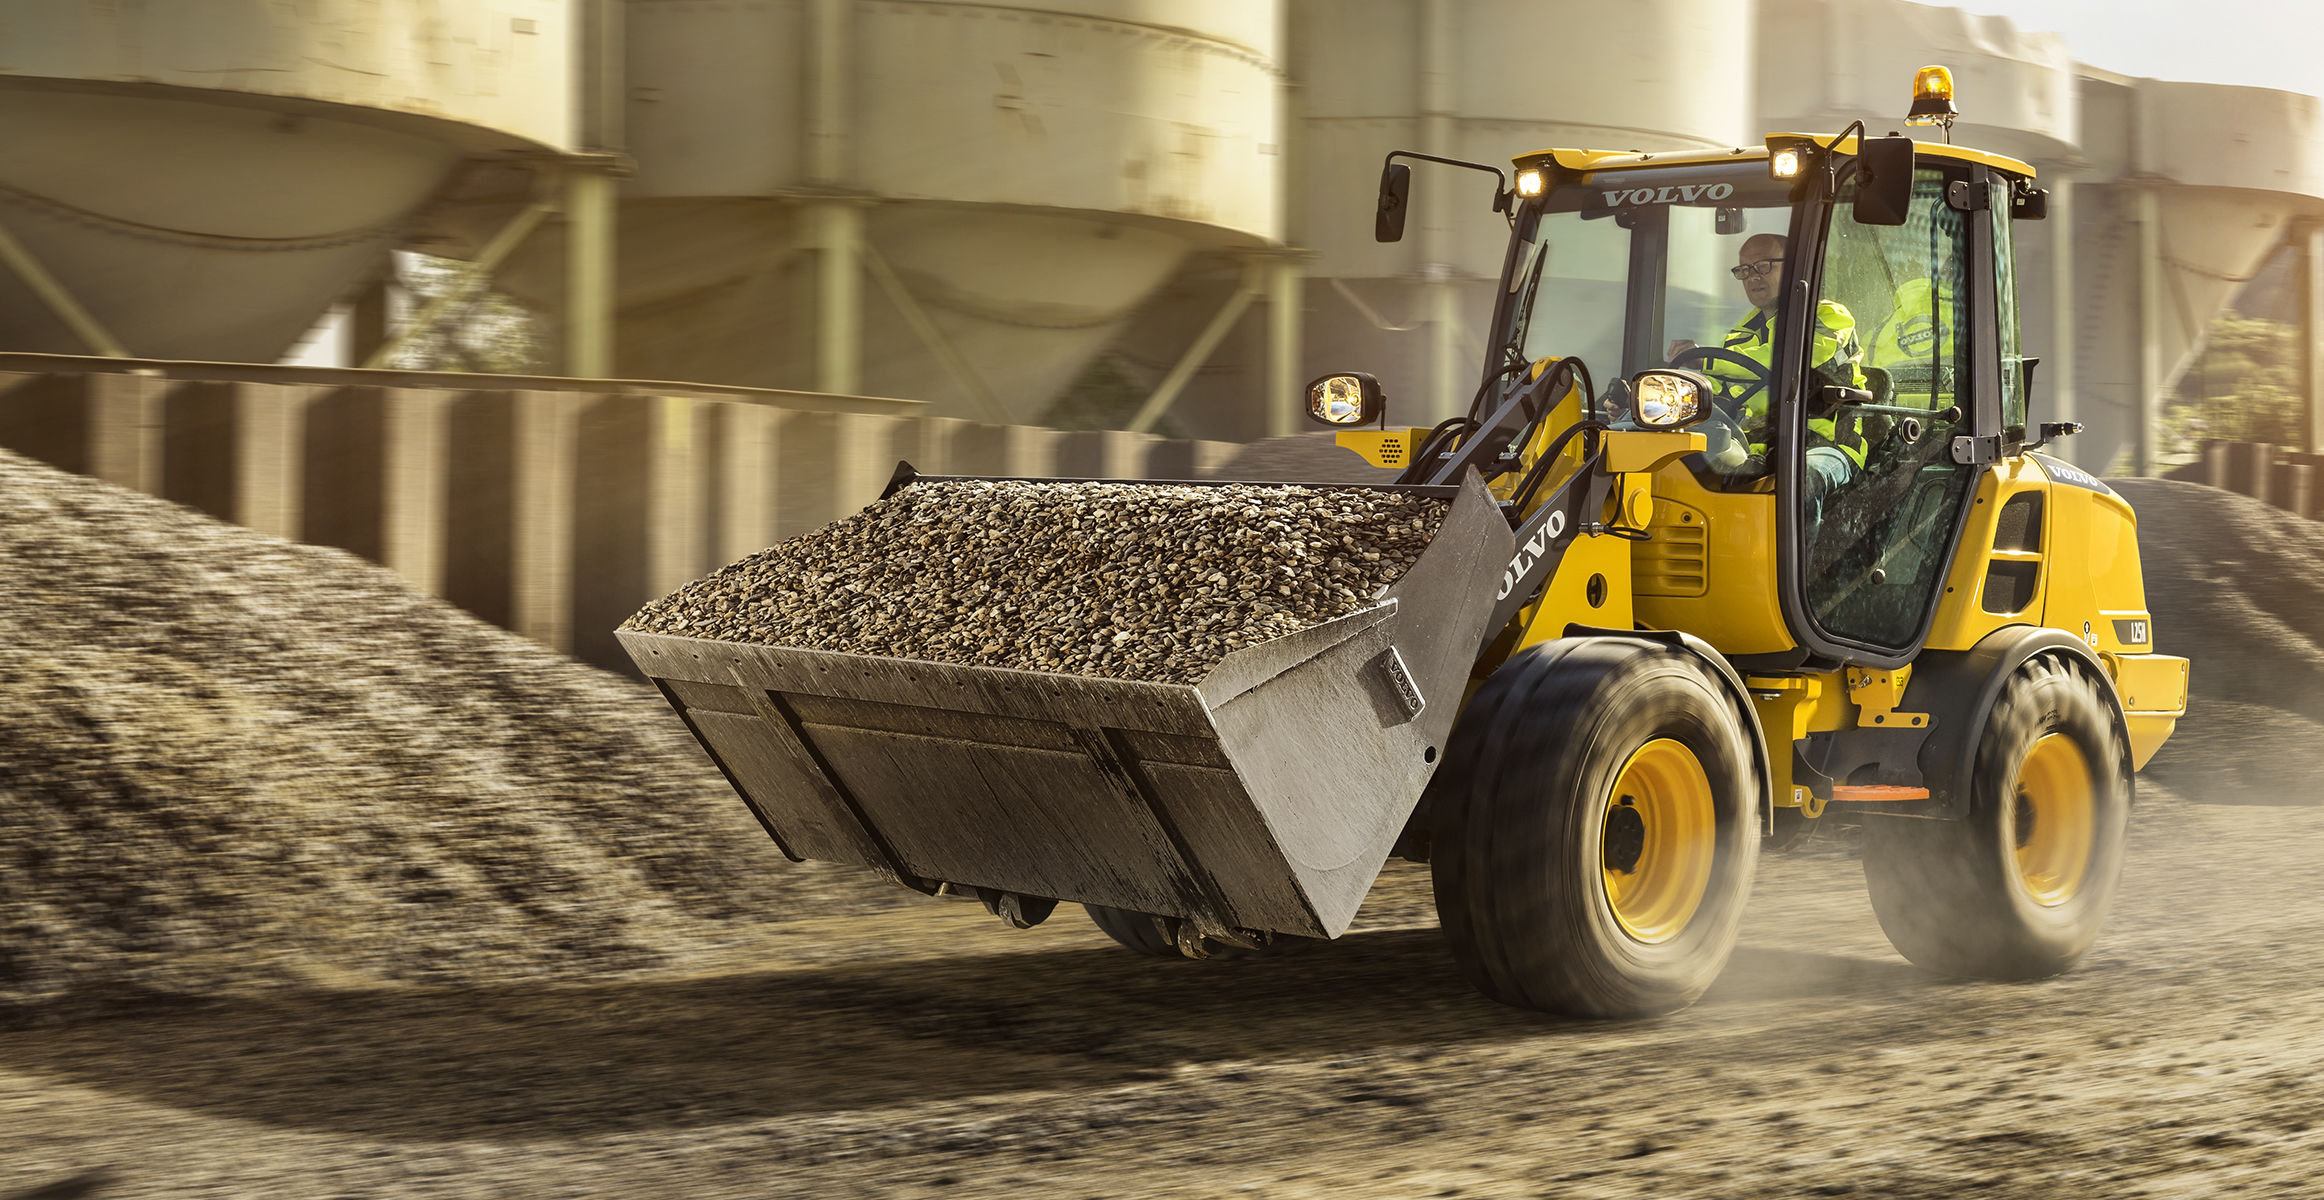 Compact Wheel Loader & Front End Loaders - Volvo Construction Equipment